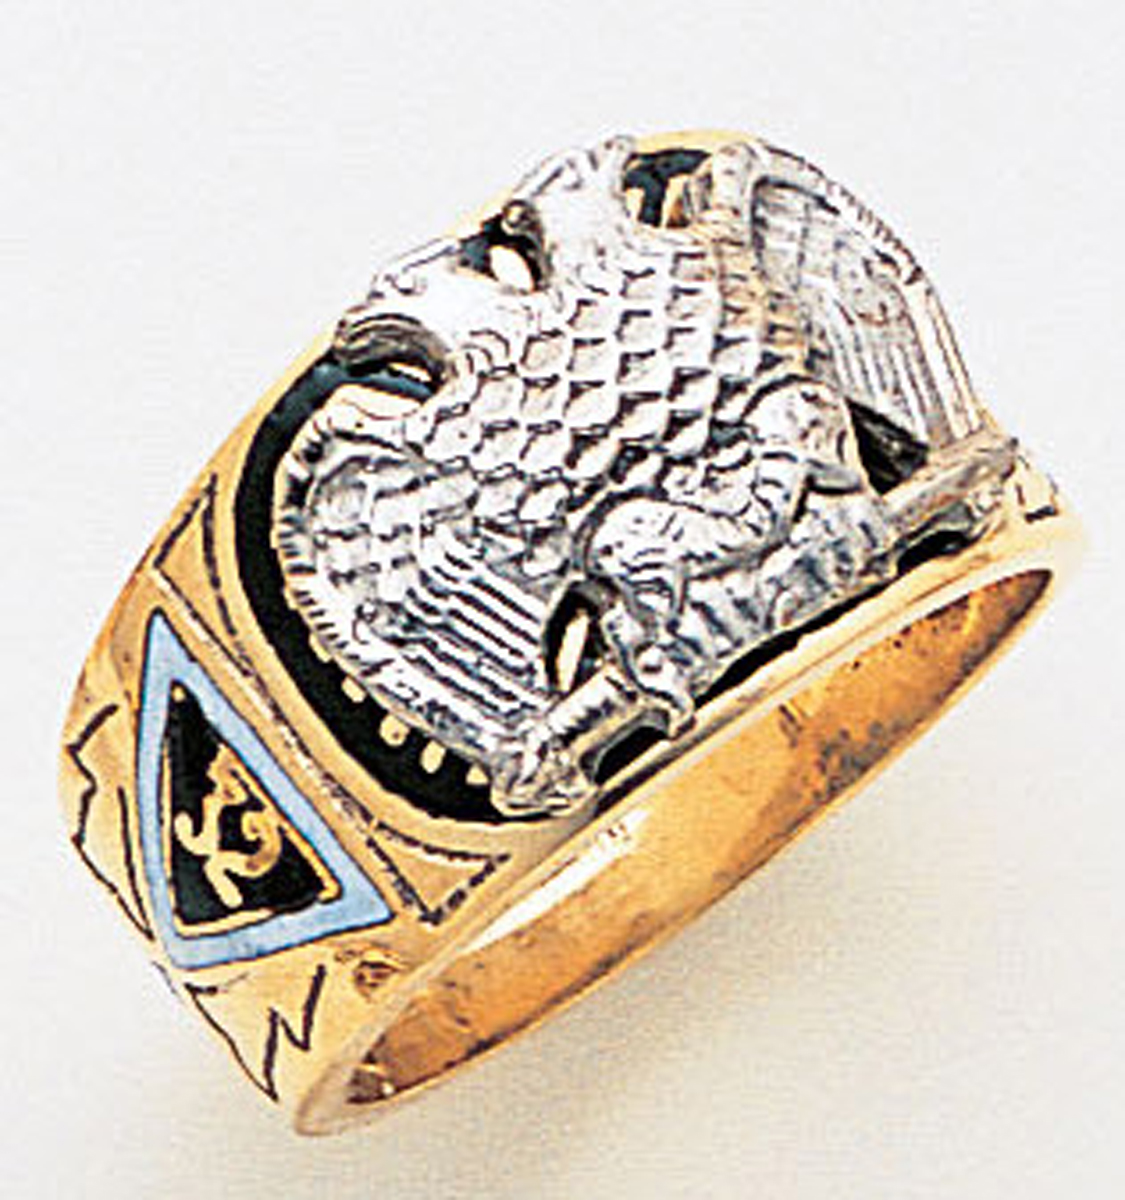 Masonic 32 Degree Scottish Rite Ring Macoy Publishing Masonic Supply 3387